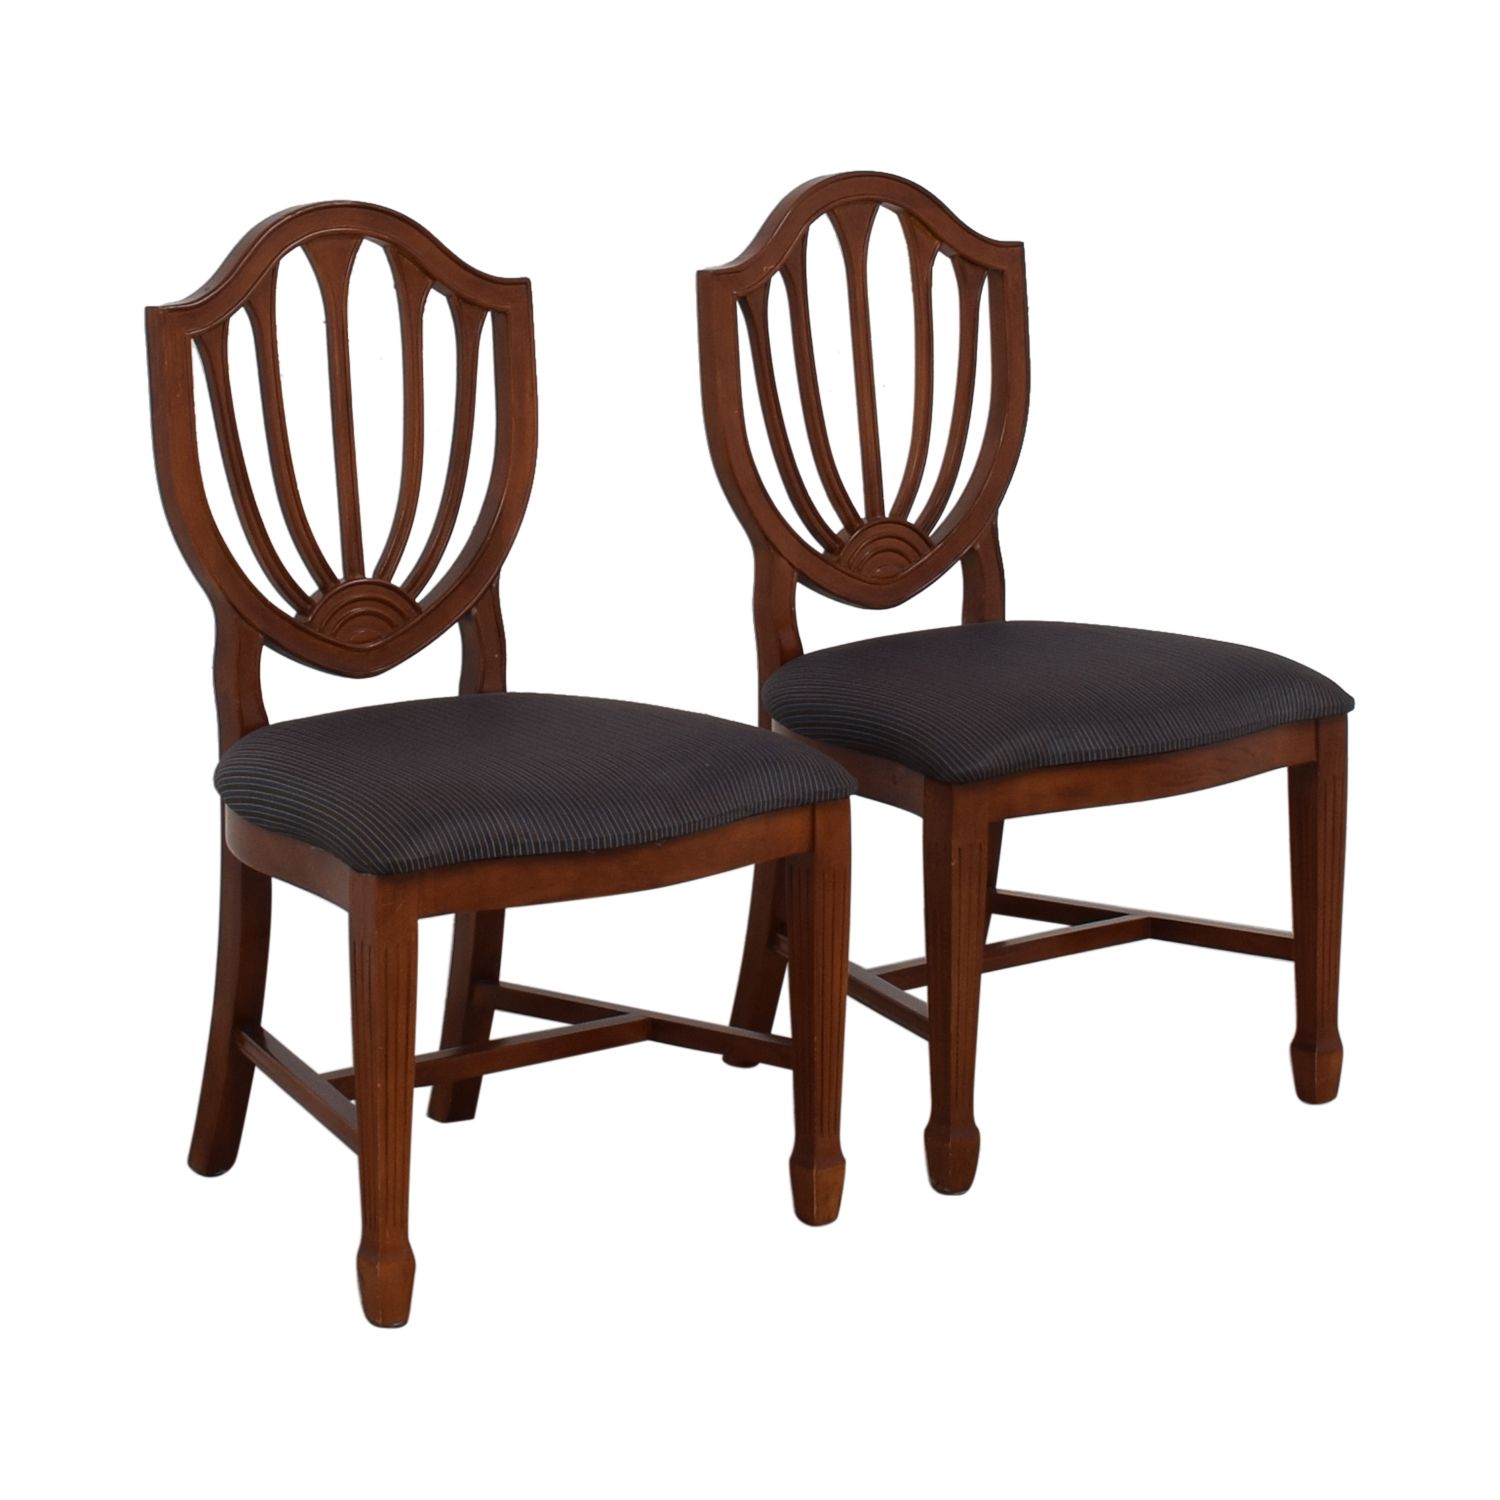 Blue Striped Upholstered Cherry Wood Accent Chairs discount